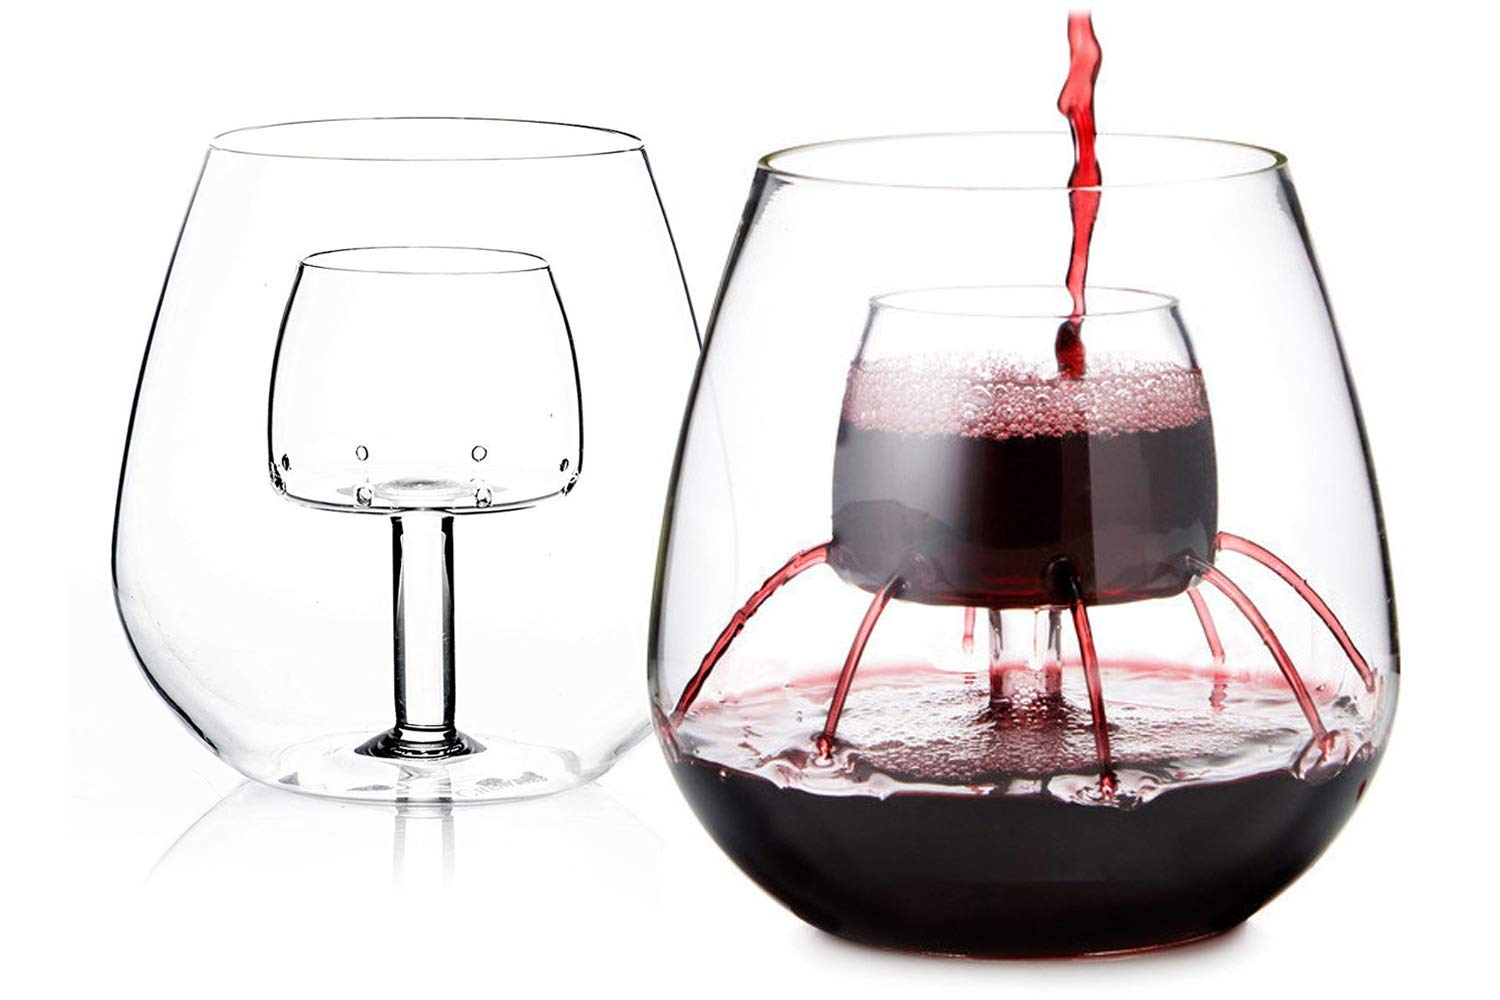 Stemless Aerating Wine Glasses by Chevalier Collection, 2 for $50 @amazon.com